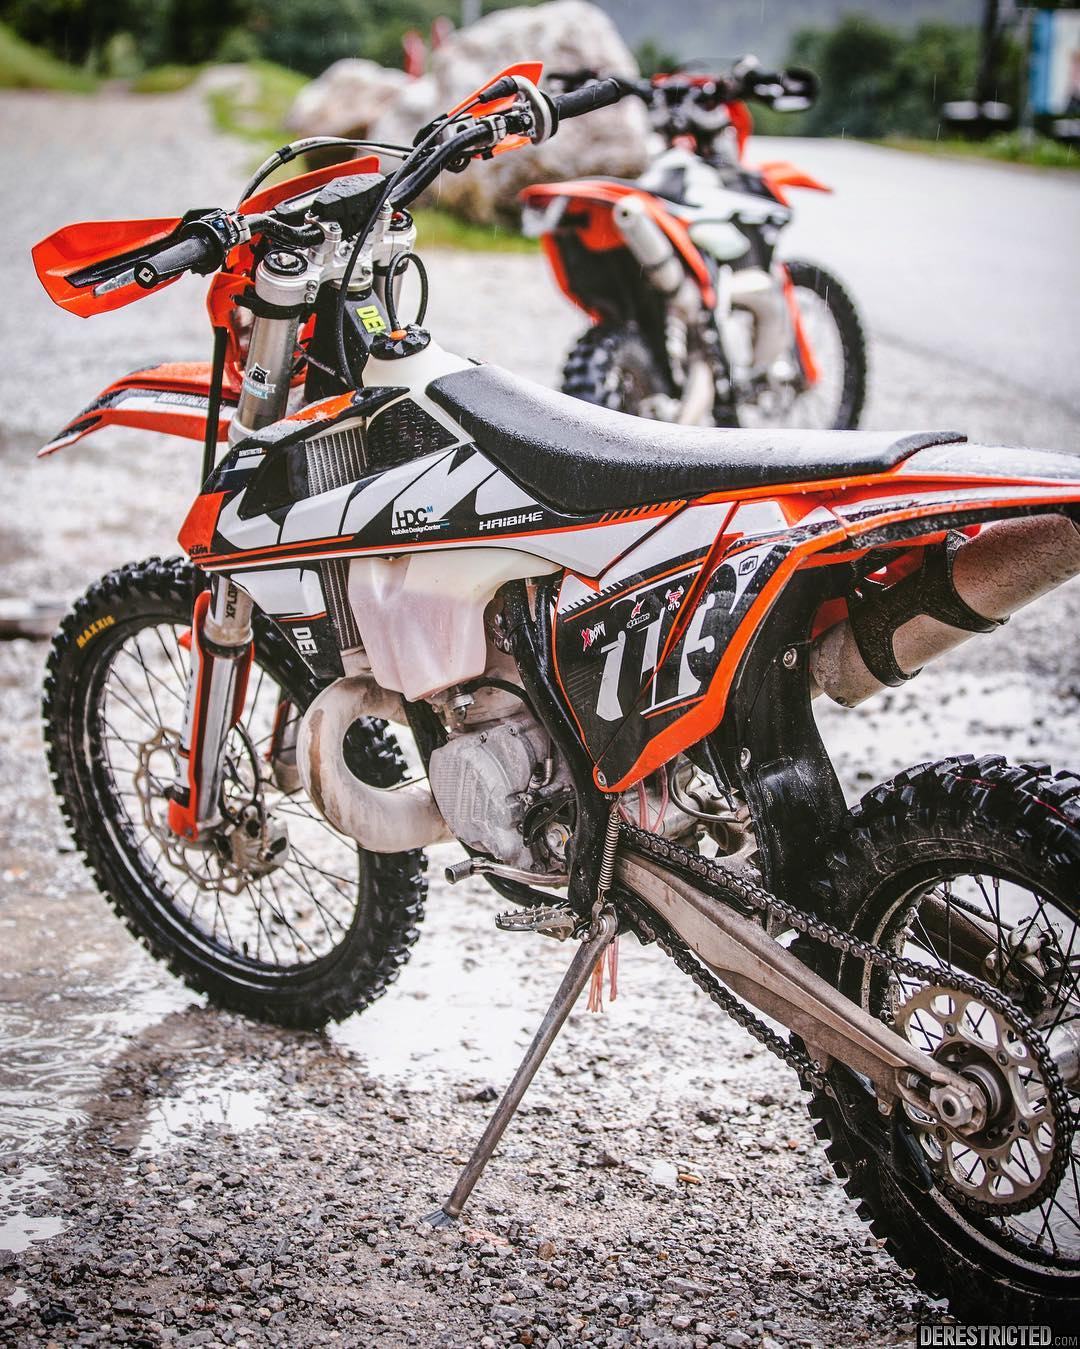 250exc or 300exc? Kind of undecided myself as to which one I like more, both really good but also surprisingly different.  #KTM #300exc #250exc #enduro